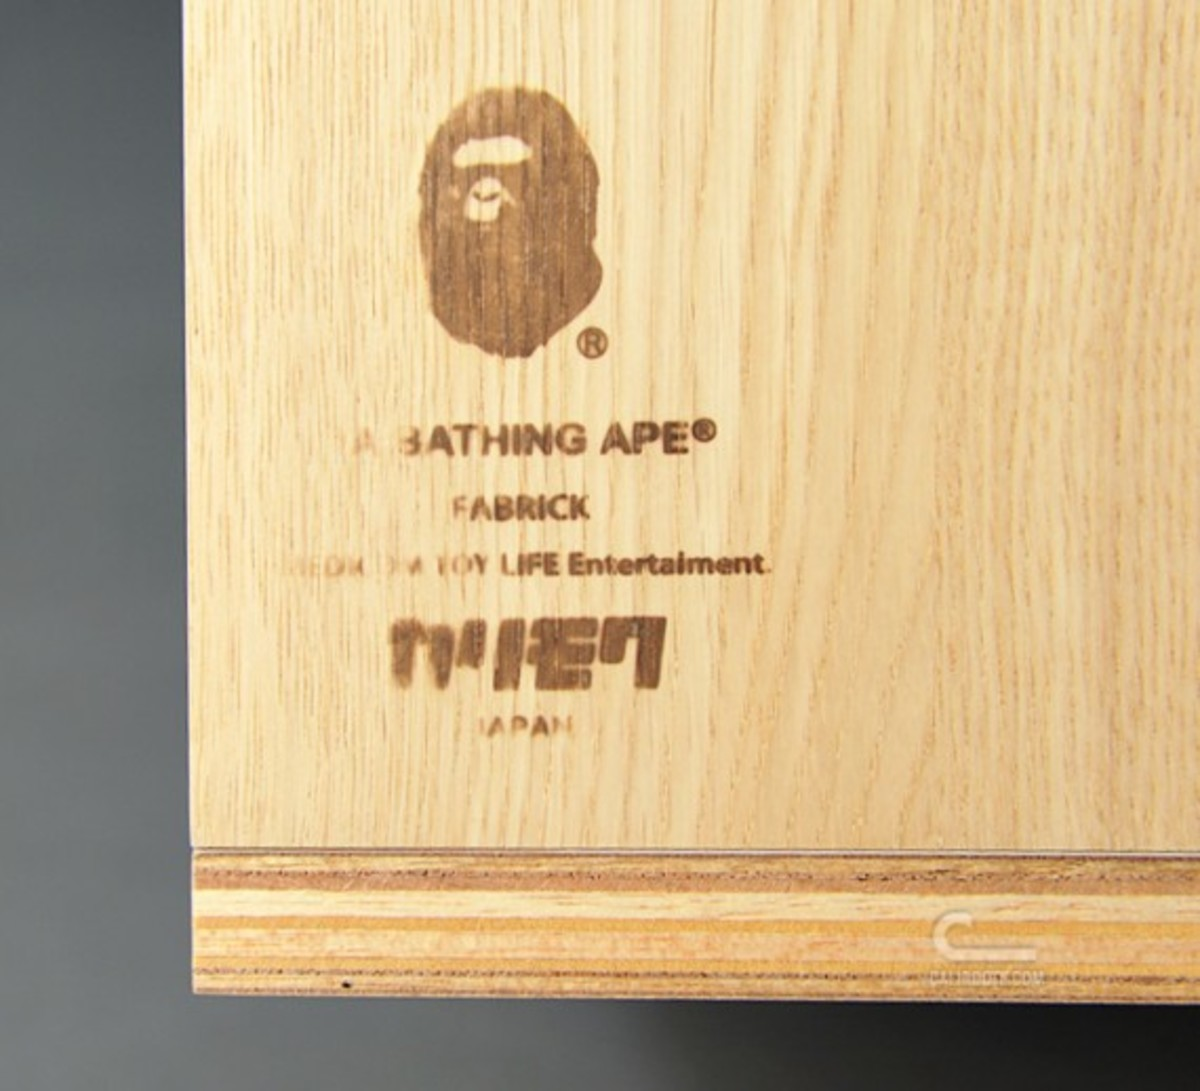 a-bathing-ape-medicom-toy-karimoku-bape-camo-furniture-07